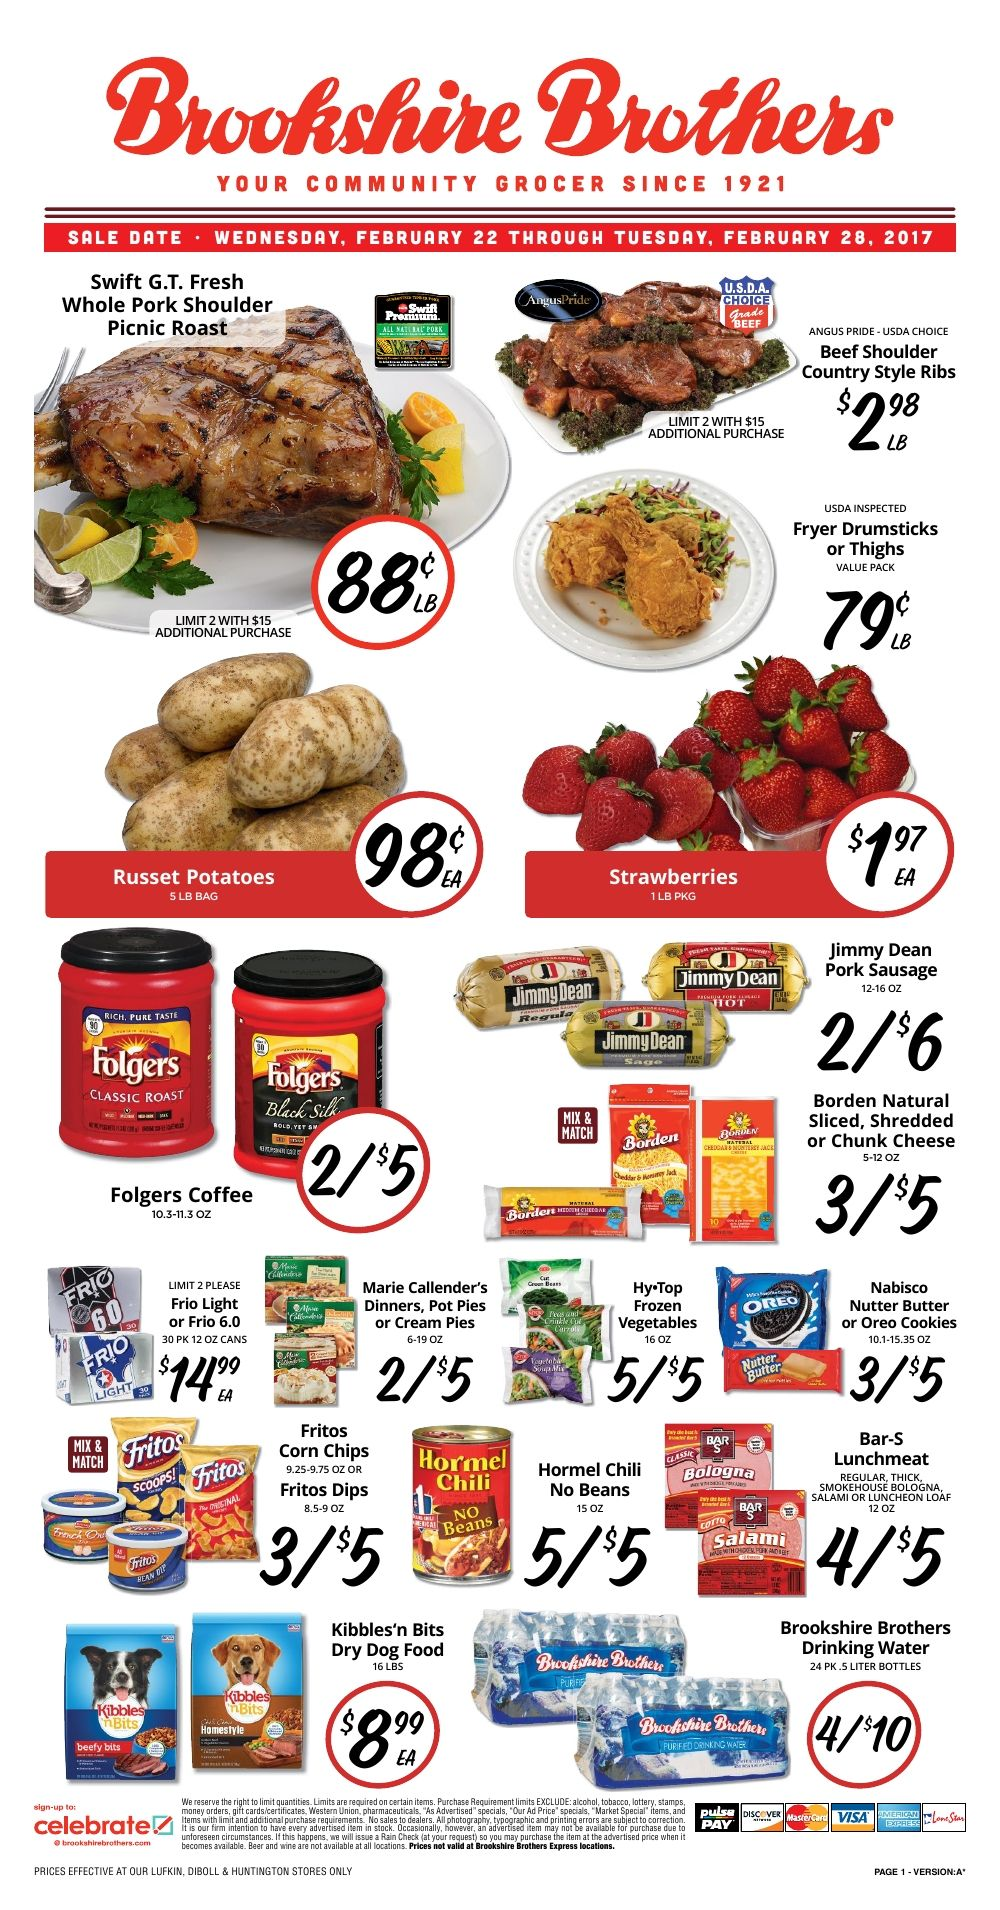 Brookshire Brothers Weekly Ad Http Www Myweeklyads Net Brookshire Brothers Brookshire Brothers Grocery Ads Pork Shoulder Picnic Roast